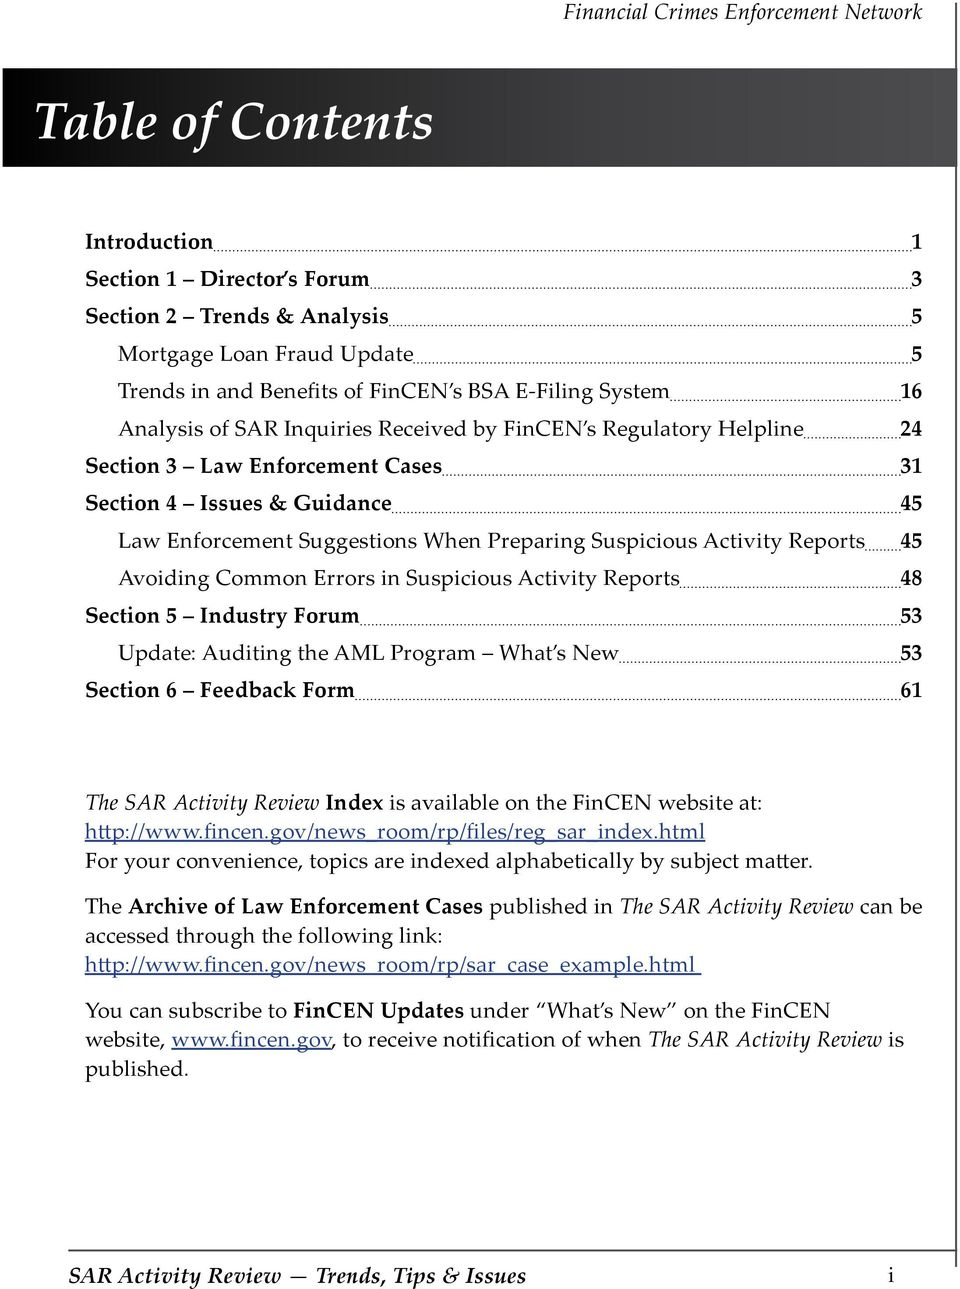 Avoiding Common Errors in Suspicious Activity Reports 48 Section 5 Industry Forum 53 Update: Auditing the AML Program What s New 53 Section 6 Feedback Form 61 The SAR Activity Review Index is